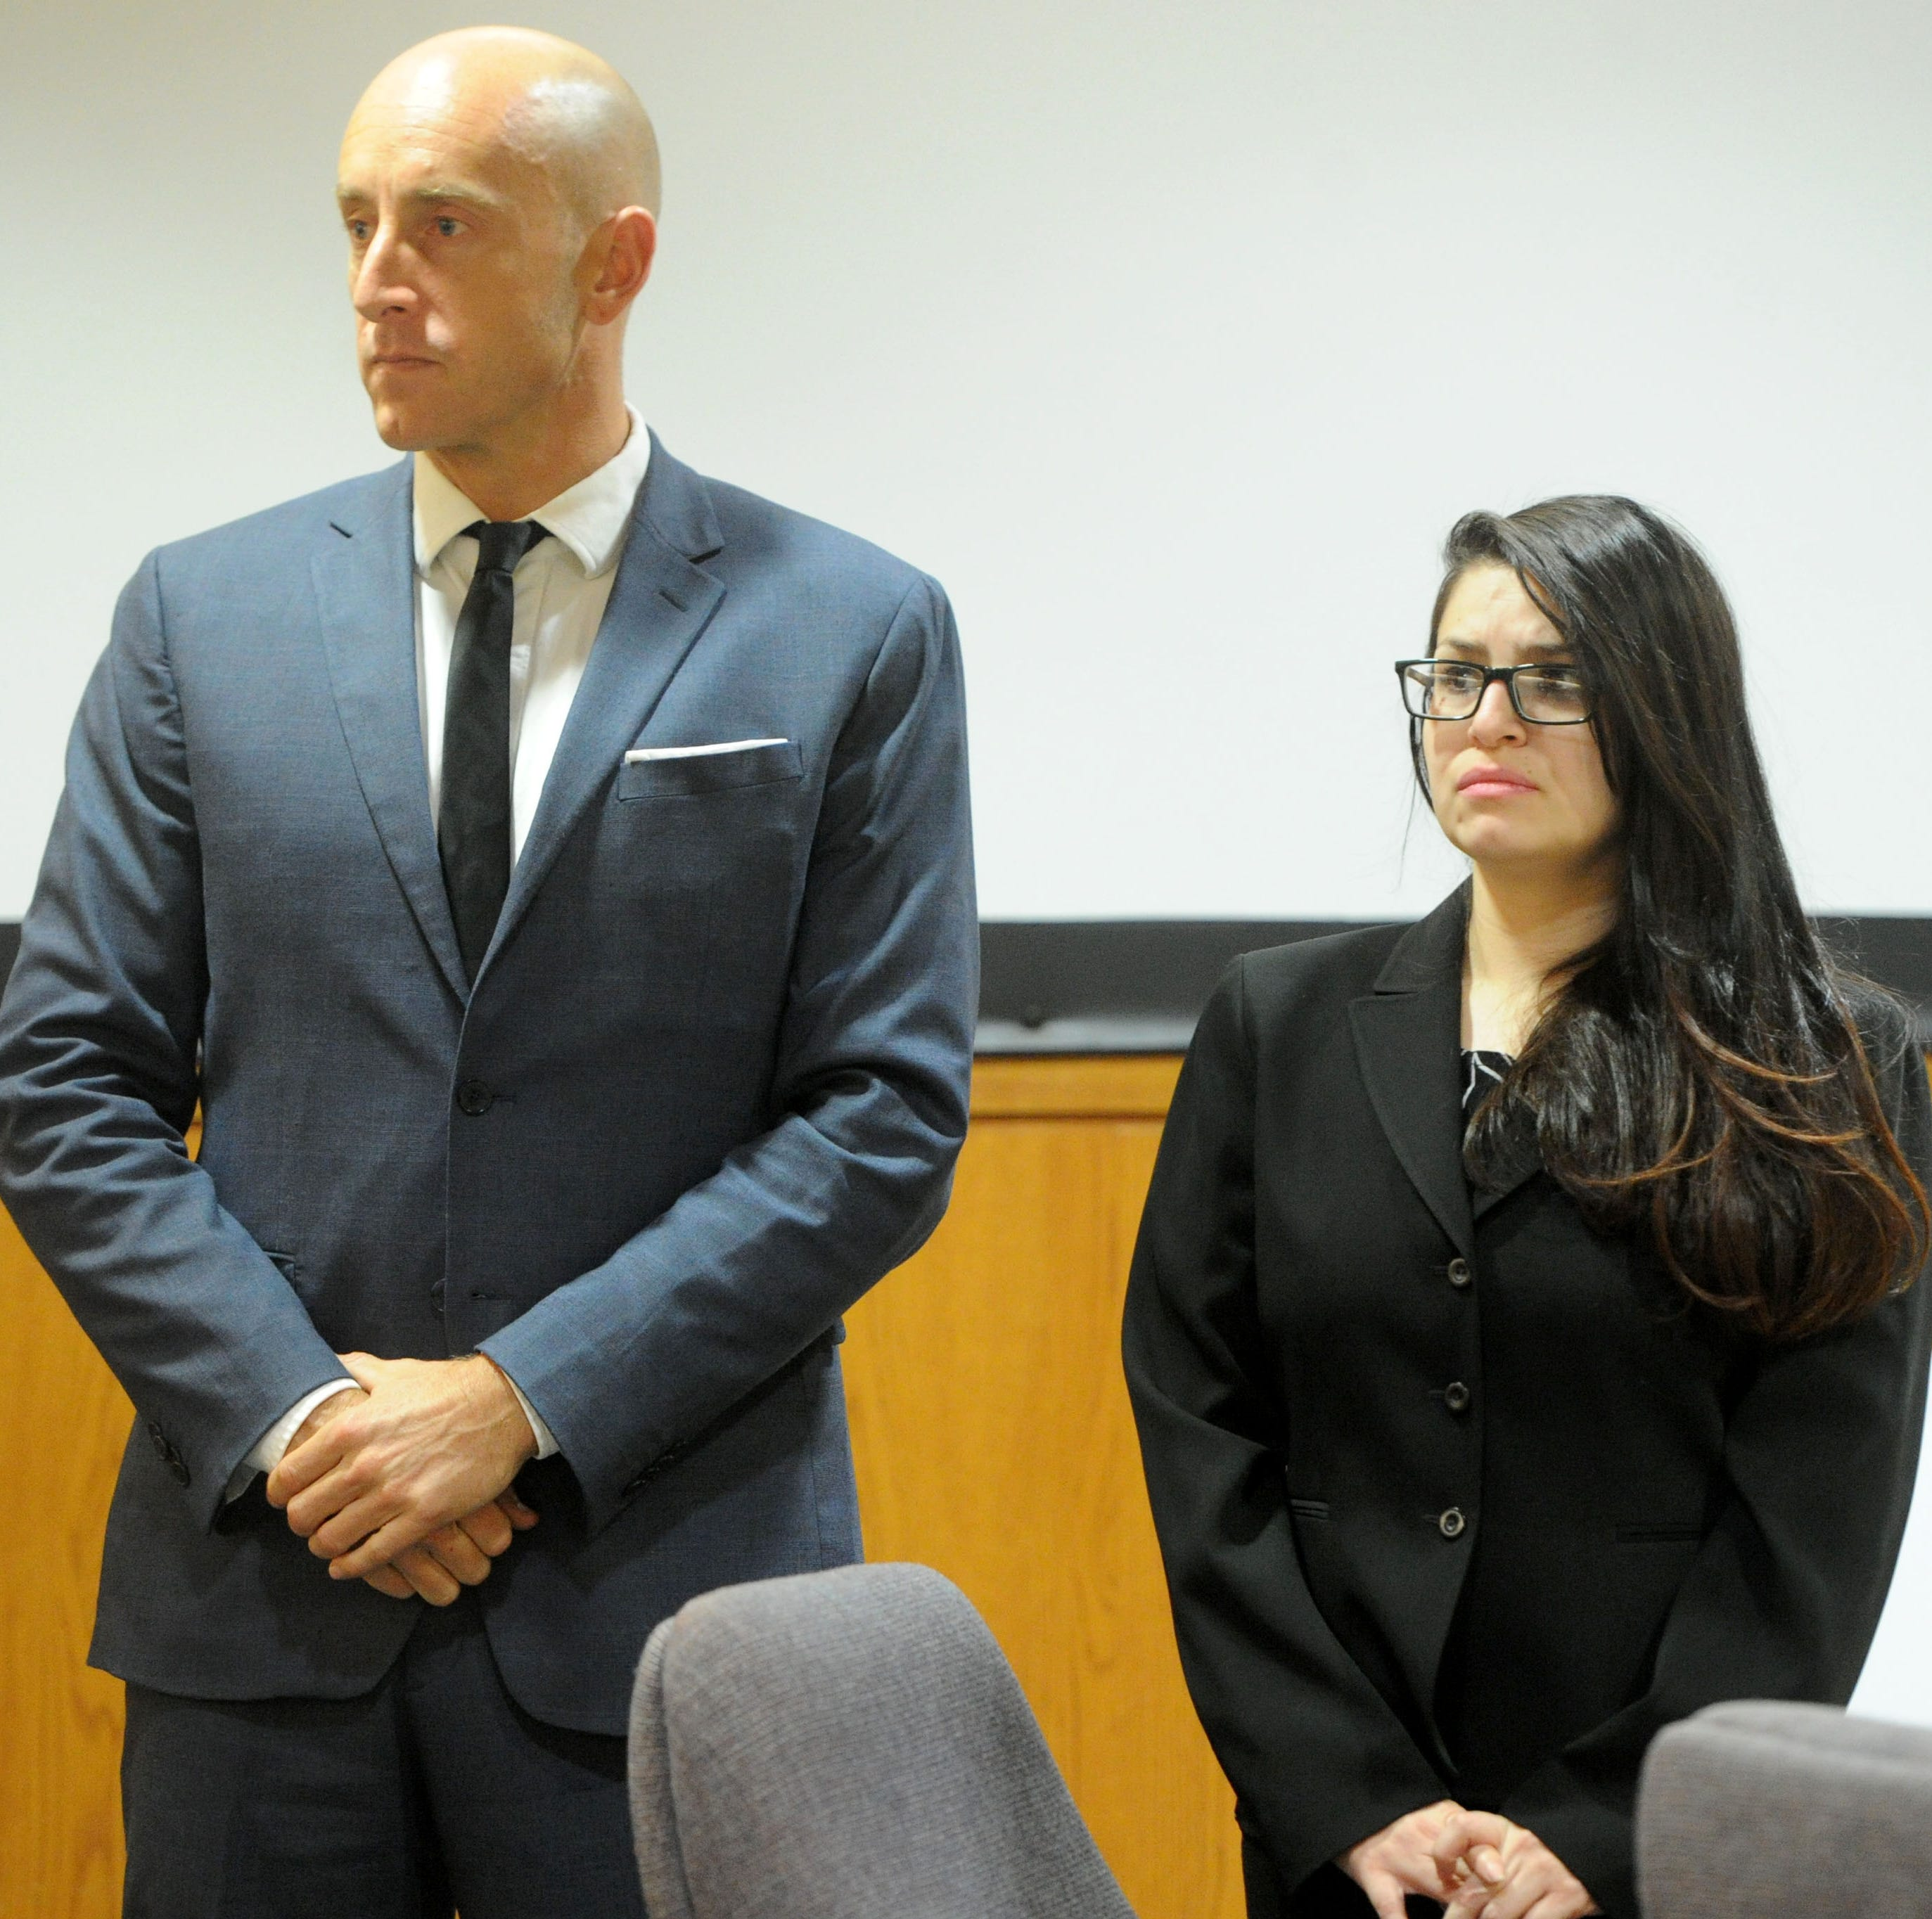 Mother of missing Oxnard girl Kimberly Lopez pleads guilty to perjury